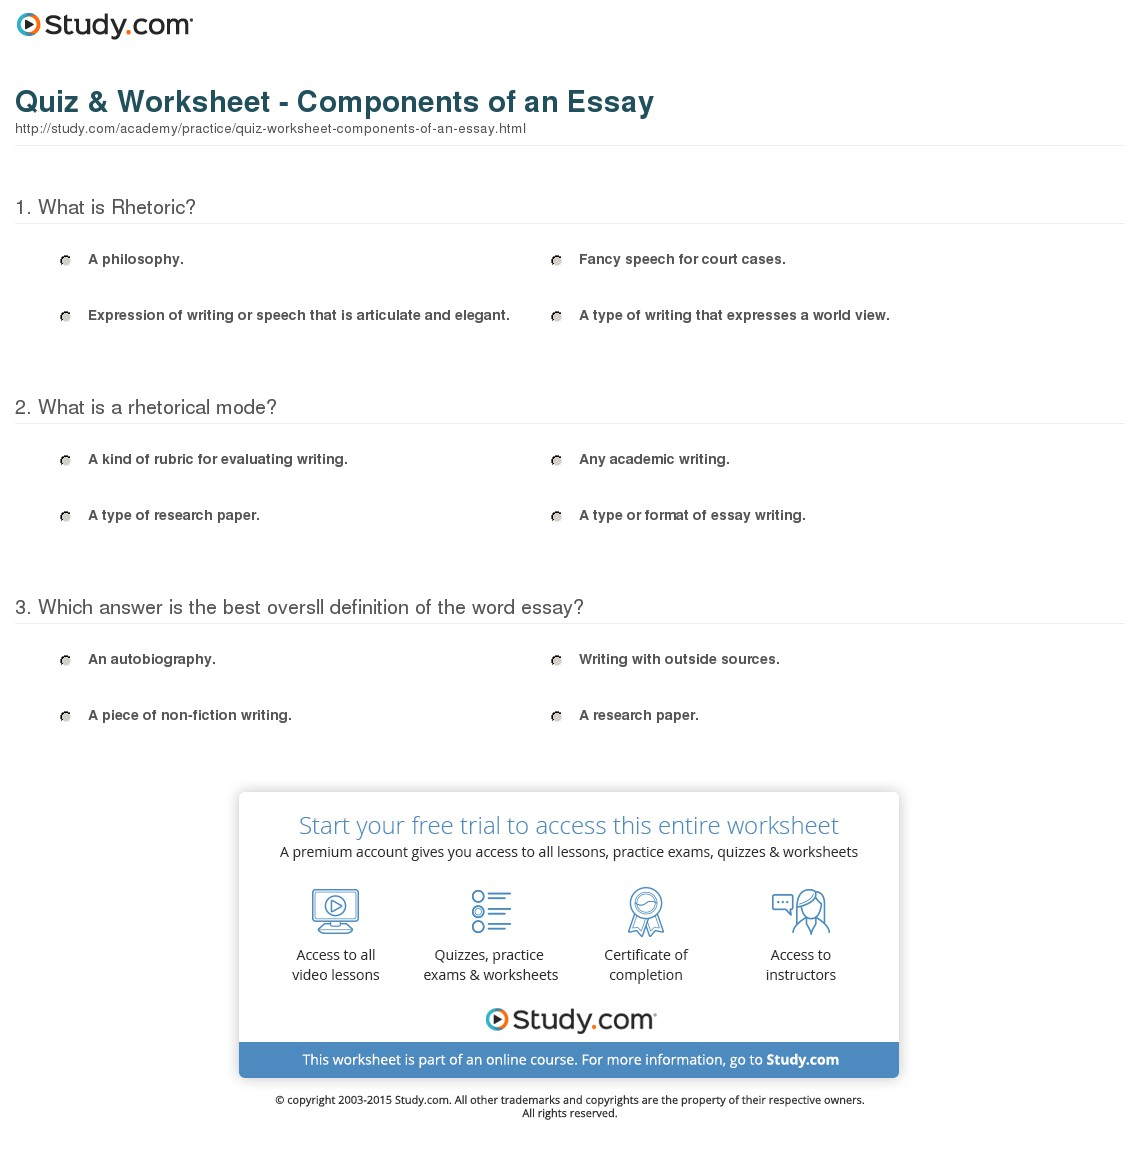 001 Essay Example Components Of An Quiz Stirring 5 Introduction Ten Expository Full